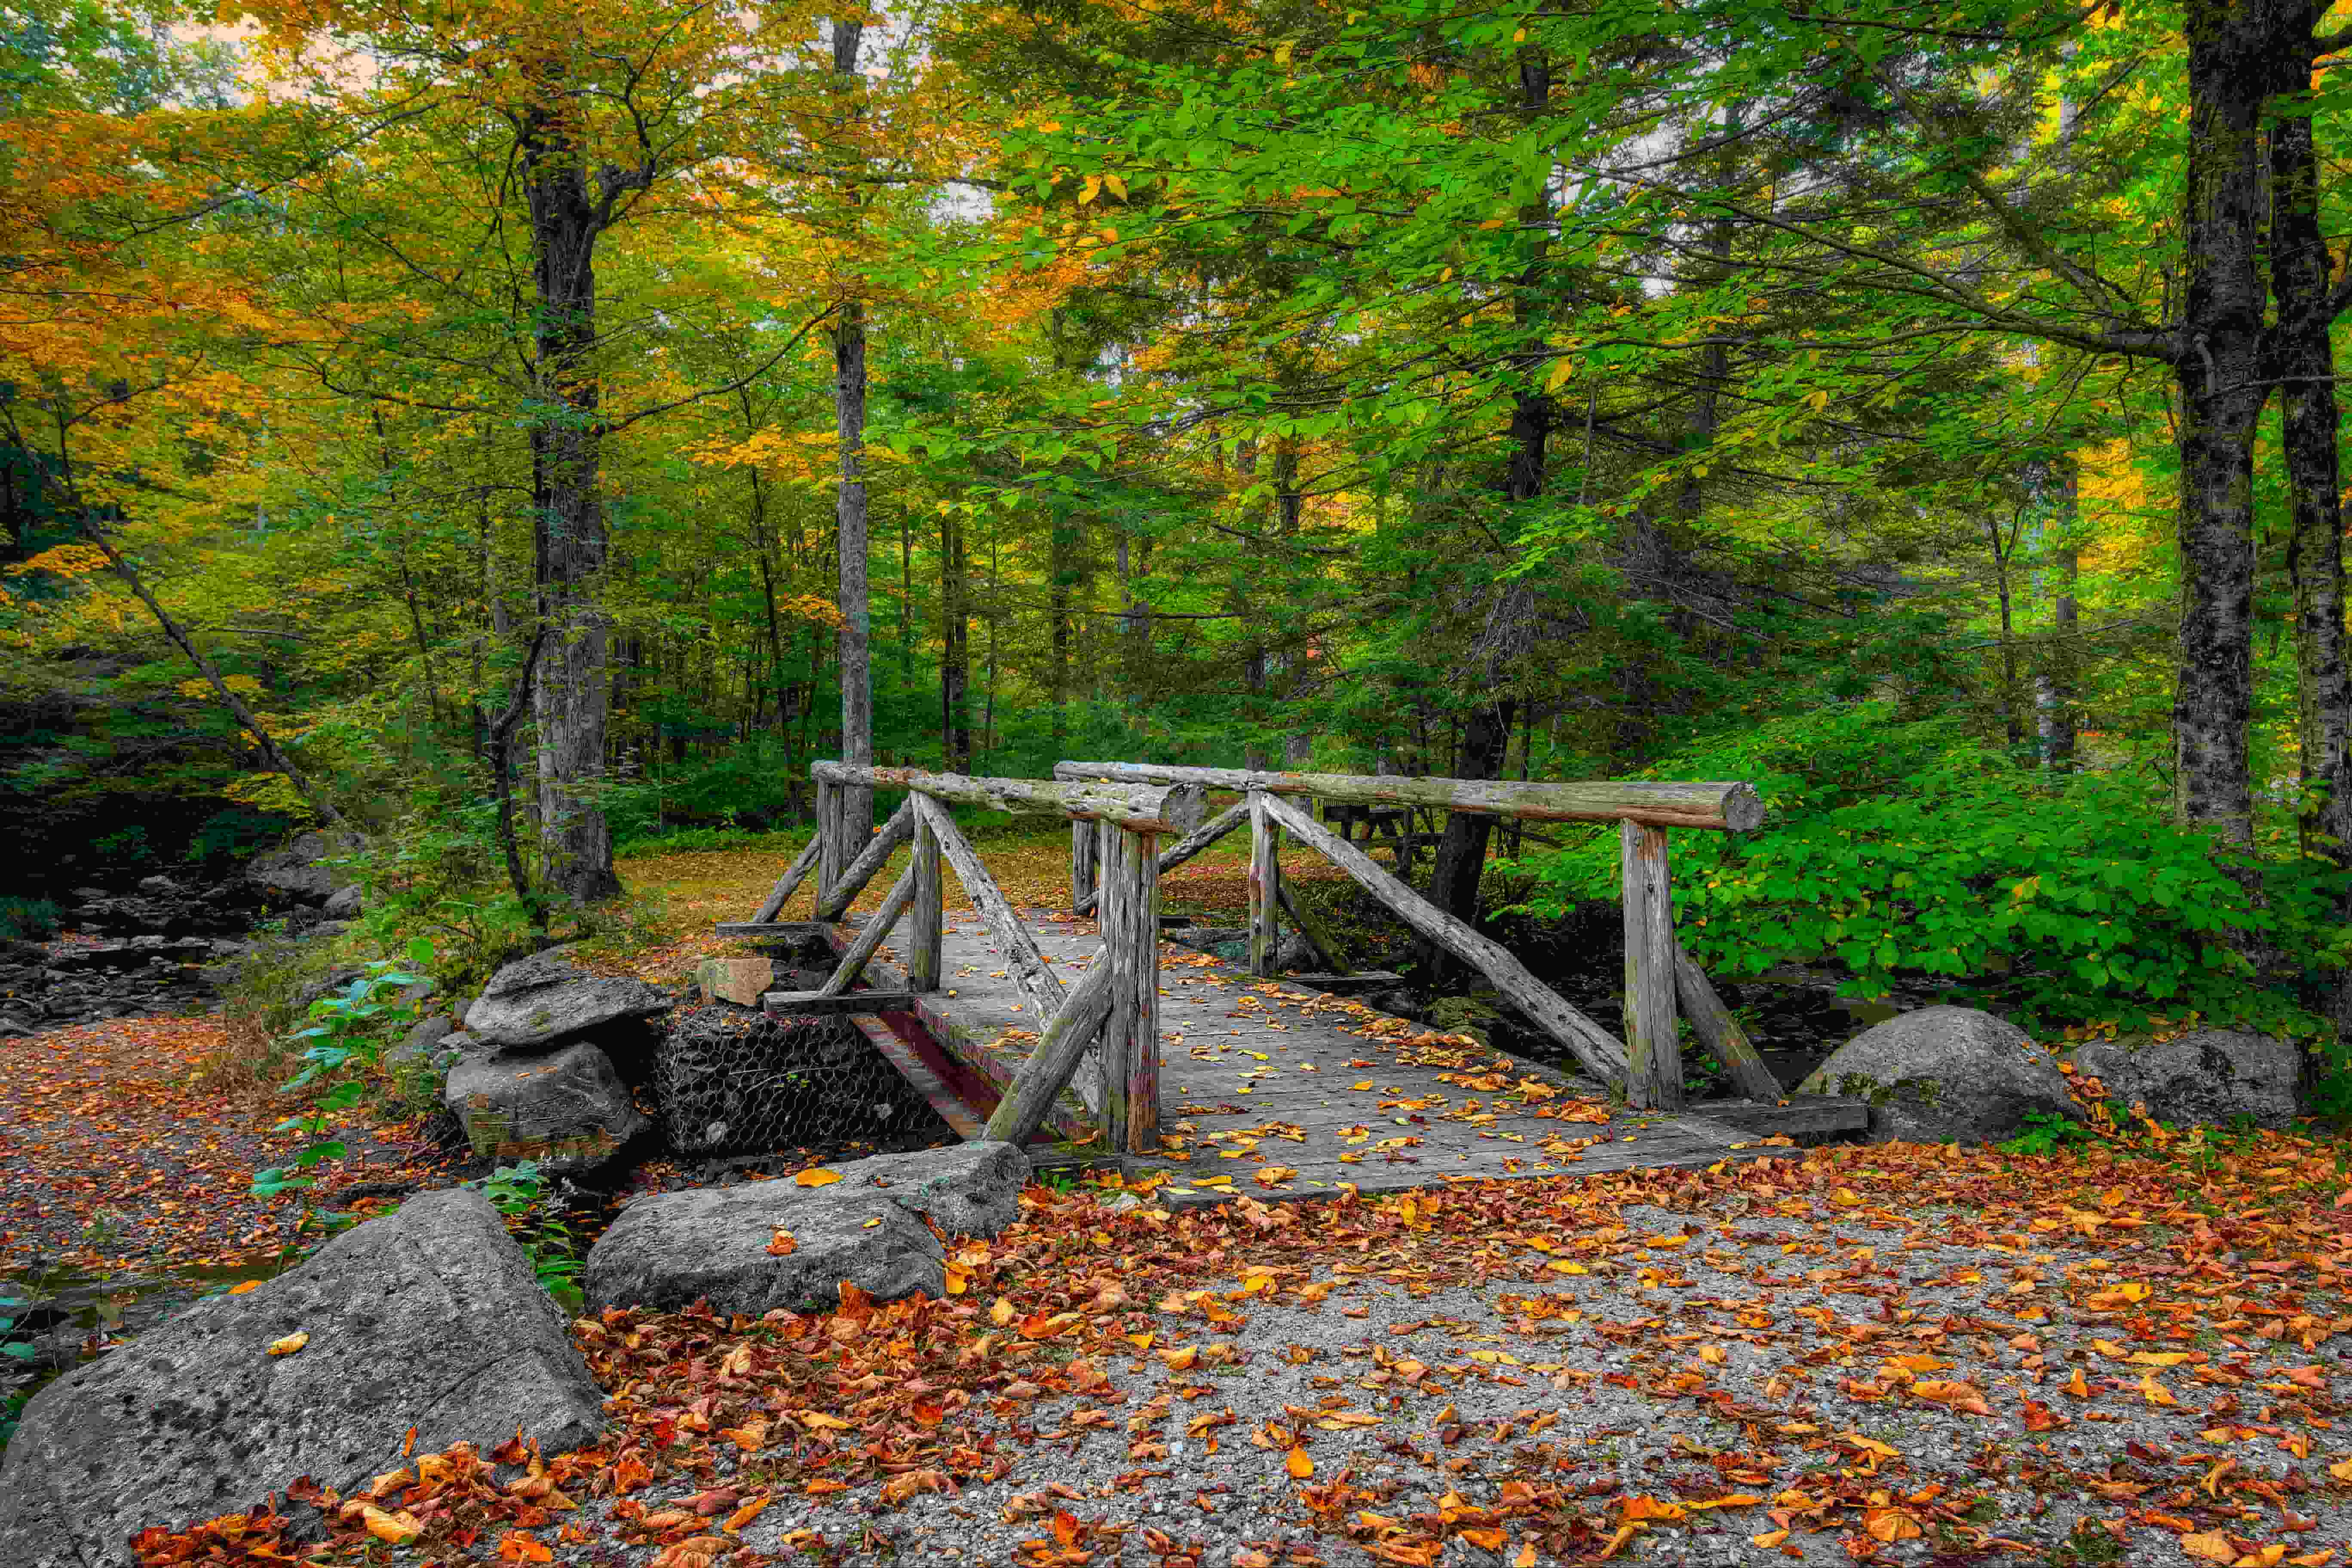 A forest trail in Macedonia Brook State Park, one of the top campgrounds in Connecticut